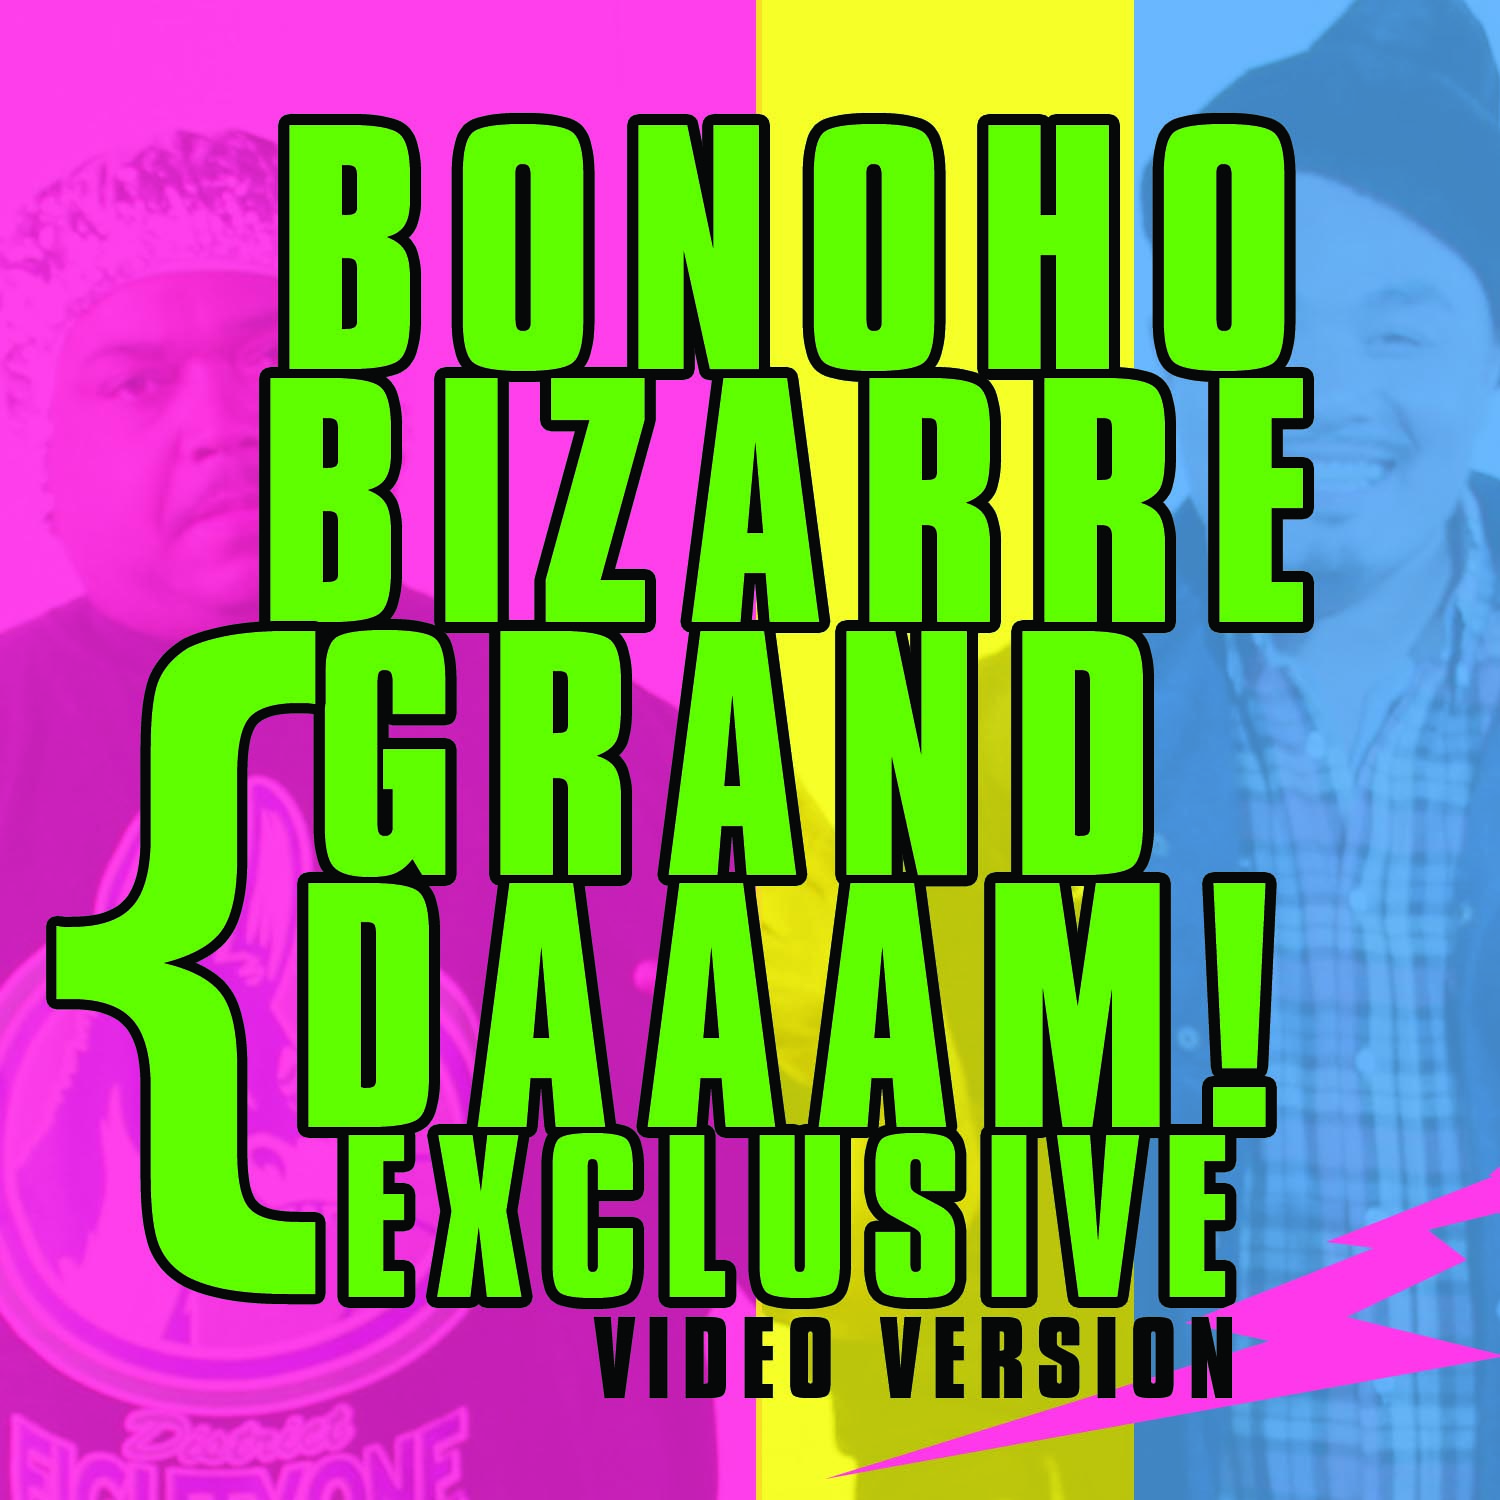 Grand Daaam by Sonny Bonoho x Bizarre of D-12